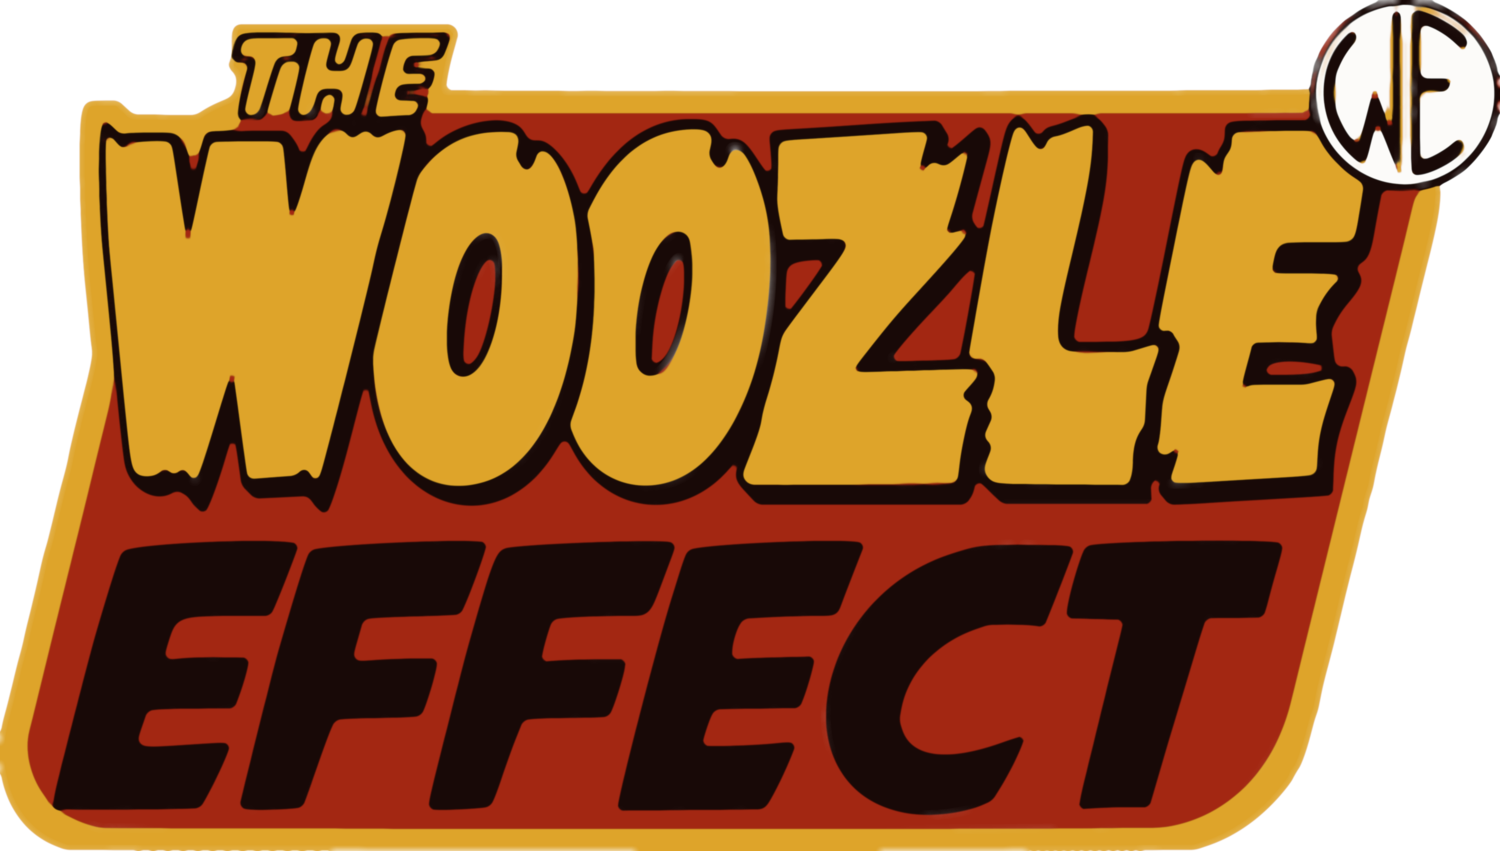 Woozle Effected Productions